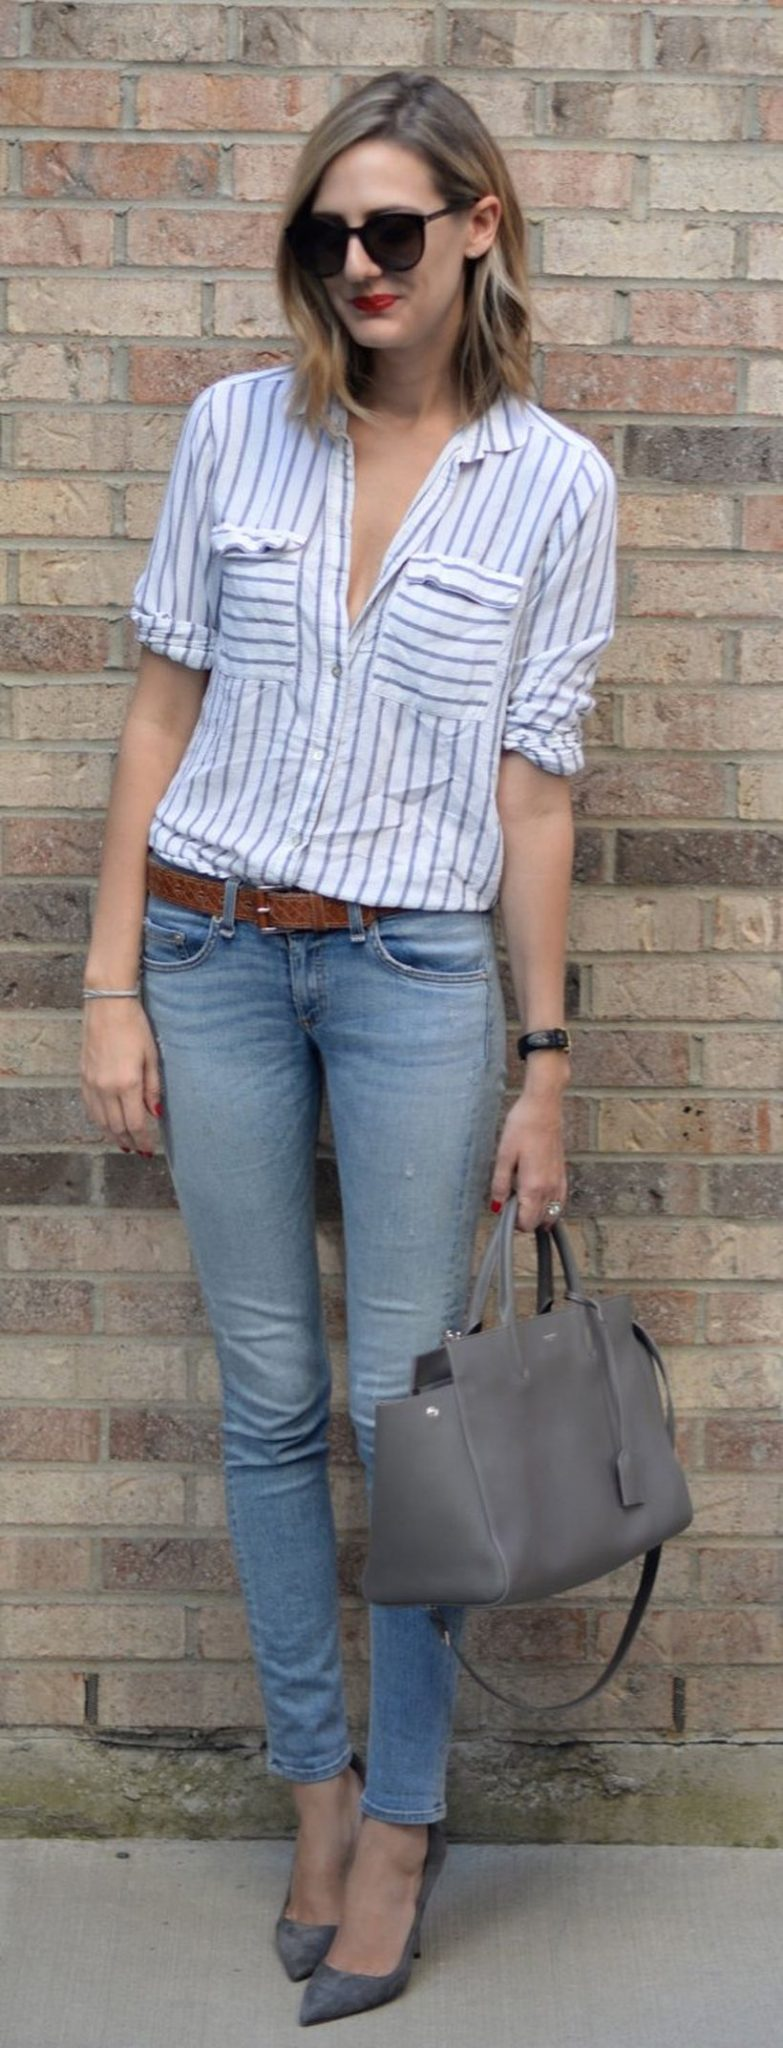 Stylish leather tote bags for work 24